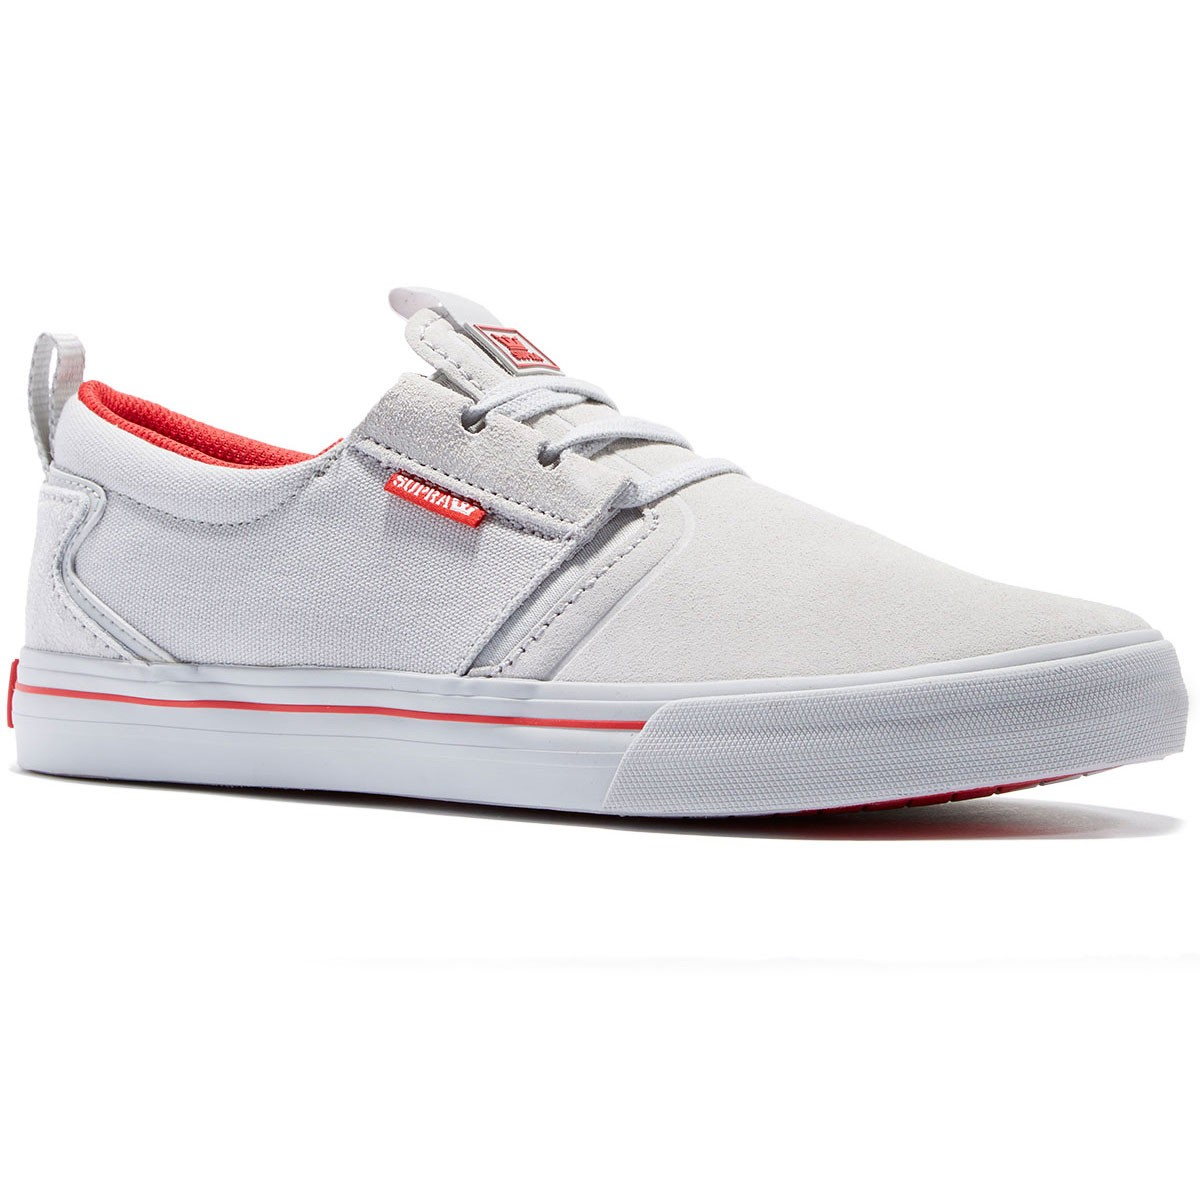 5d5fc5508ea1 Supra Flow QS Shoes - Grey Red - 8.5